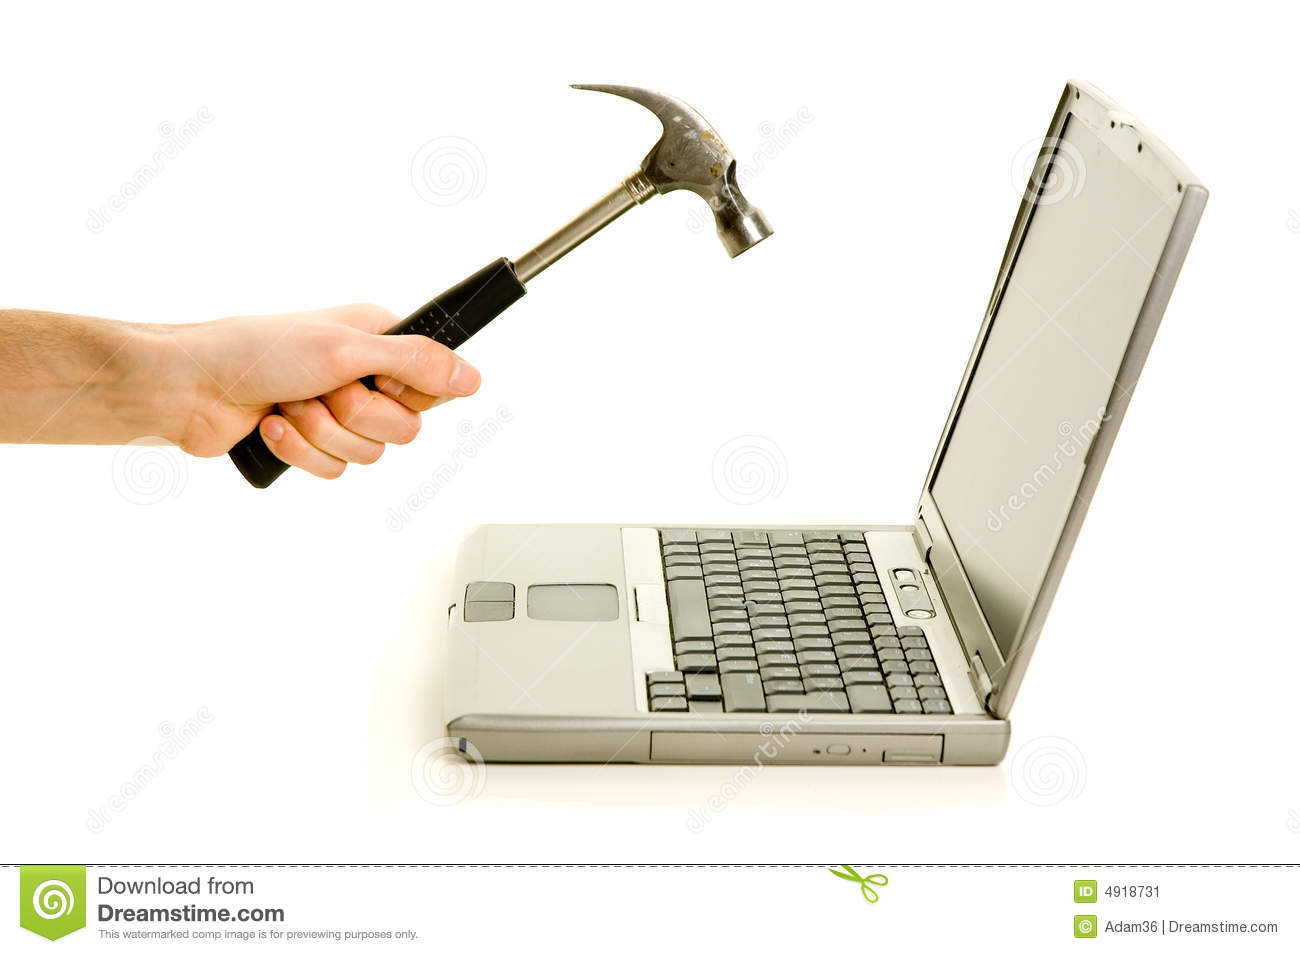 smashing-laptop-hammer-4918731.jpg